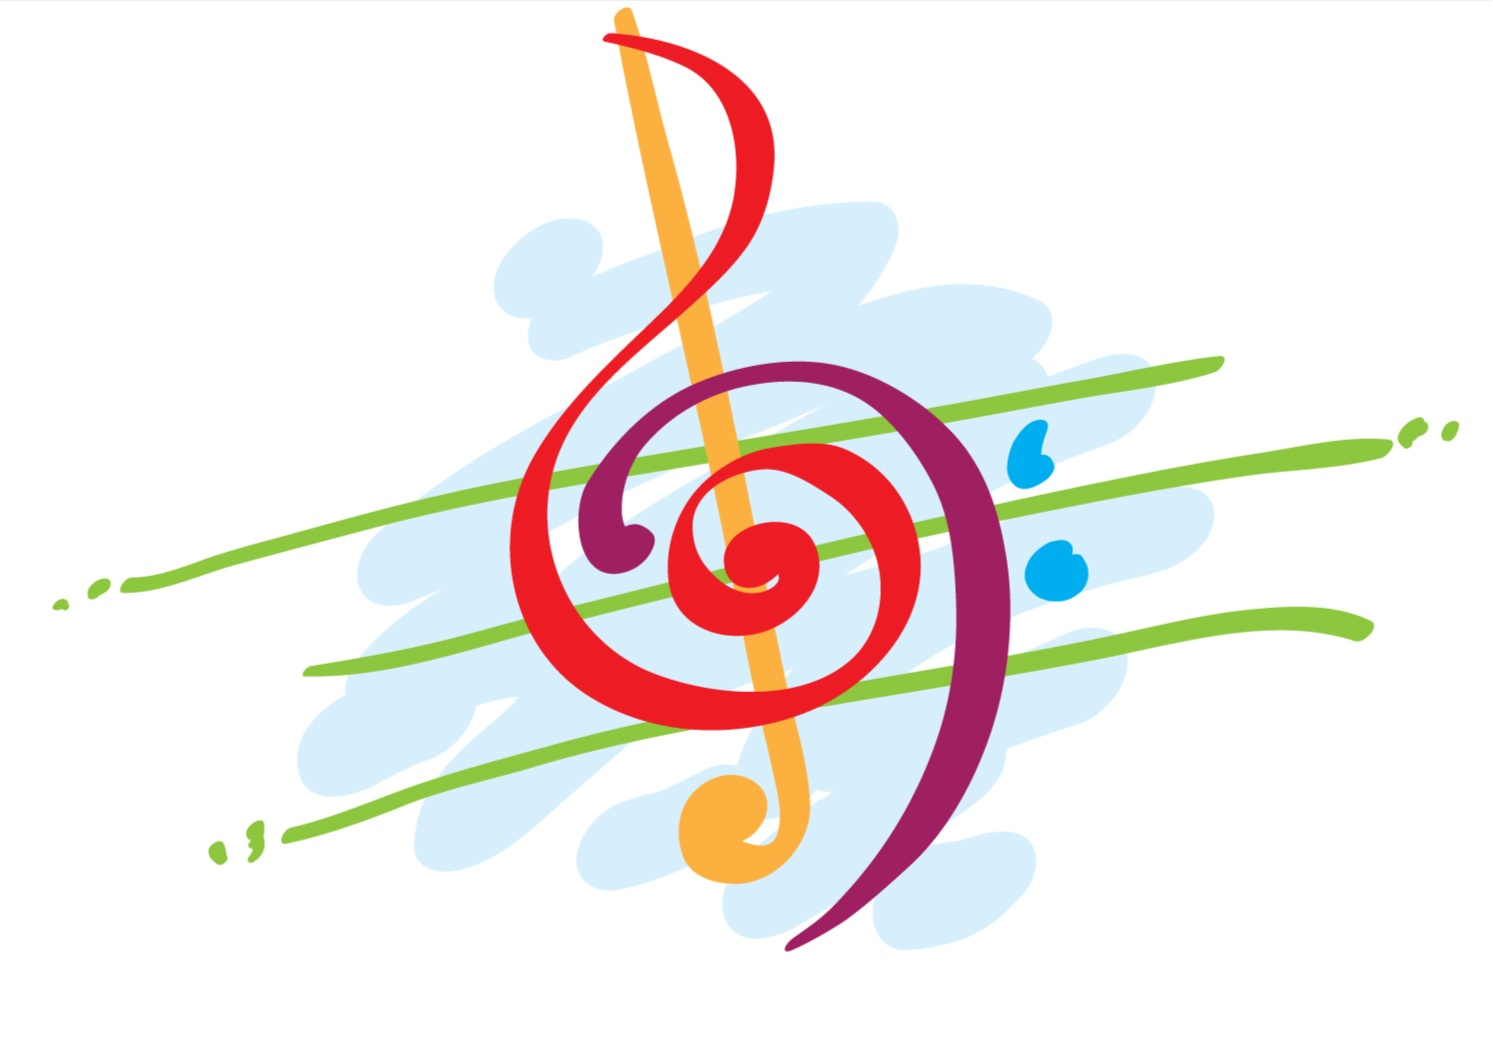 Music Note Image - ClipArt Best